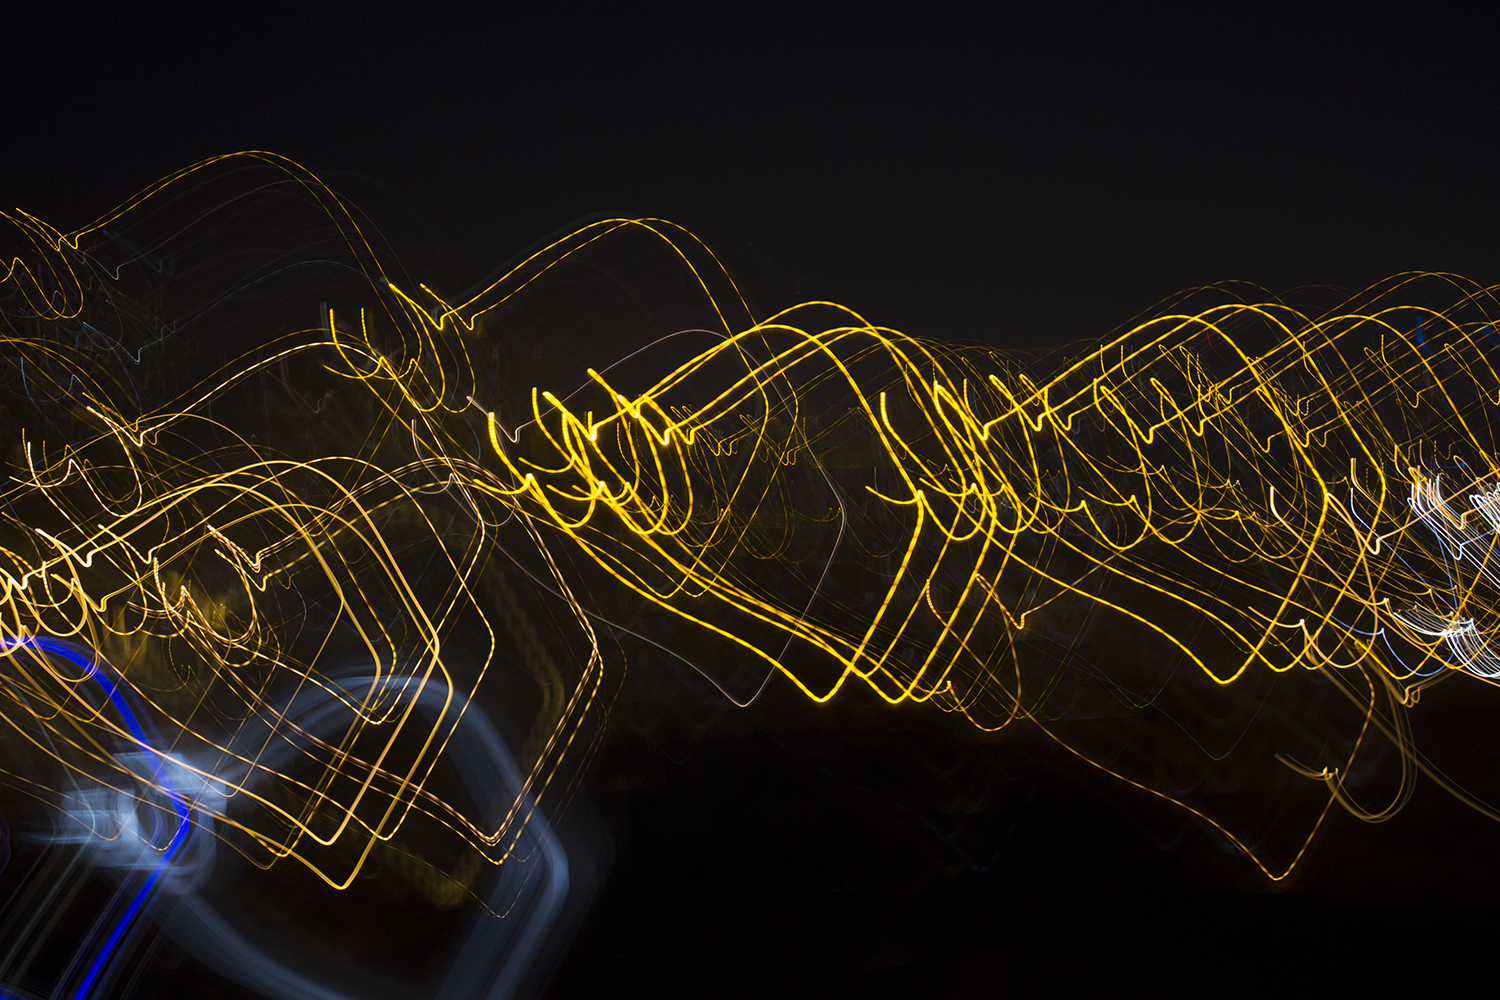 Night time photography 4 .jpg